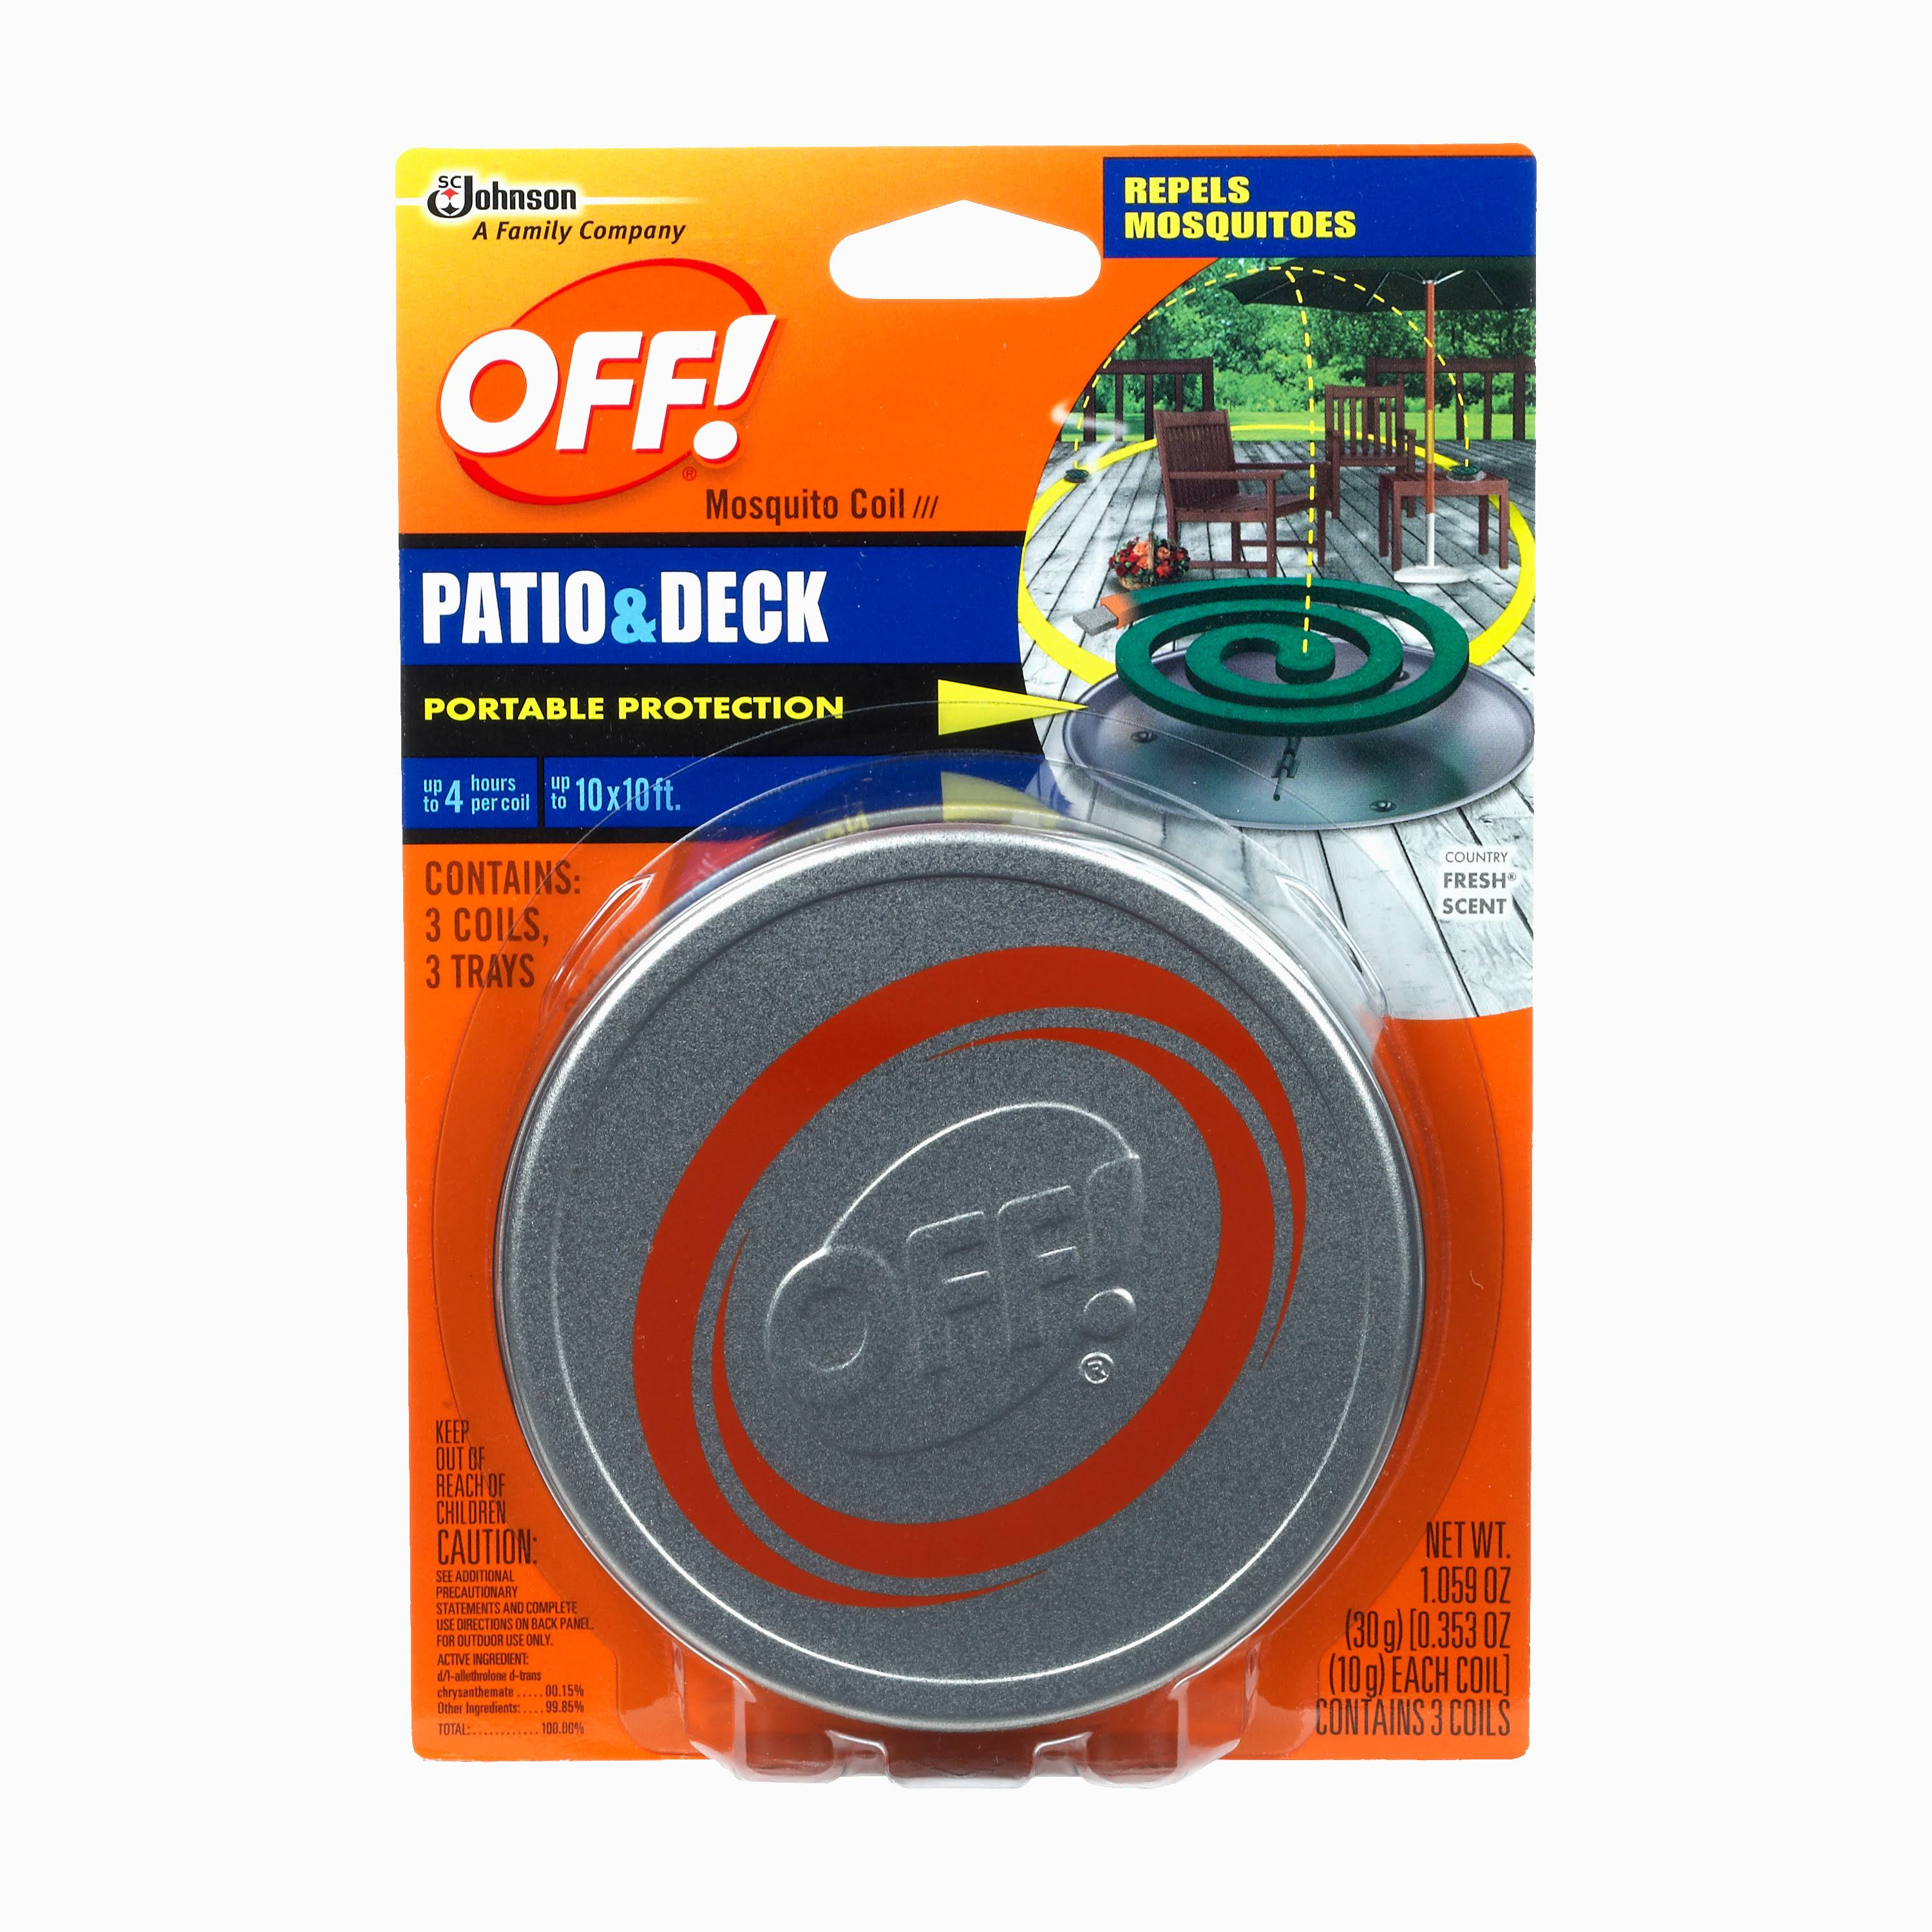 Off Patio and Deck Mosquito Repellent - 3 Coils, 3 Traps